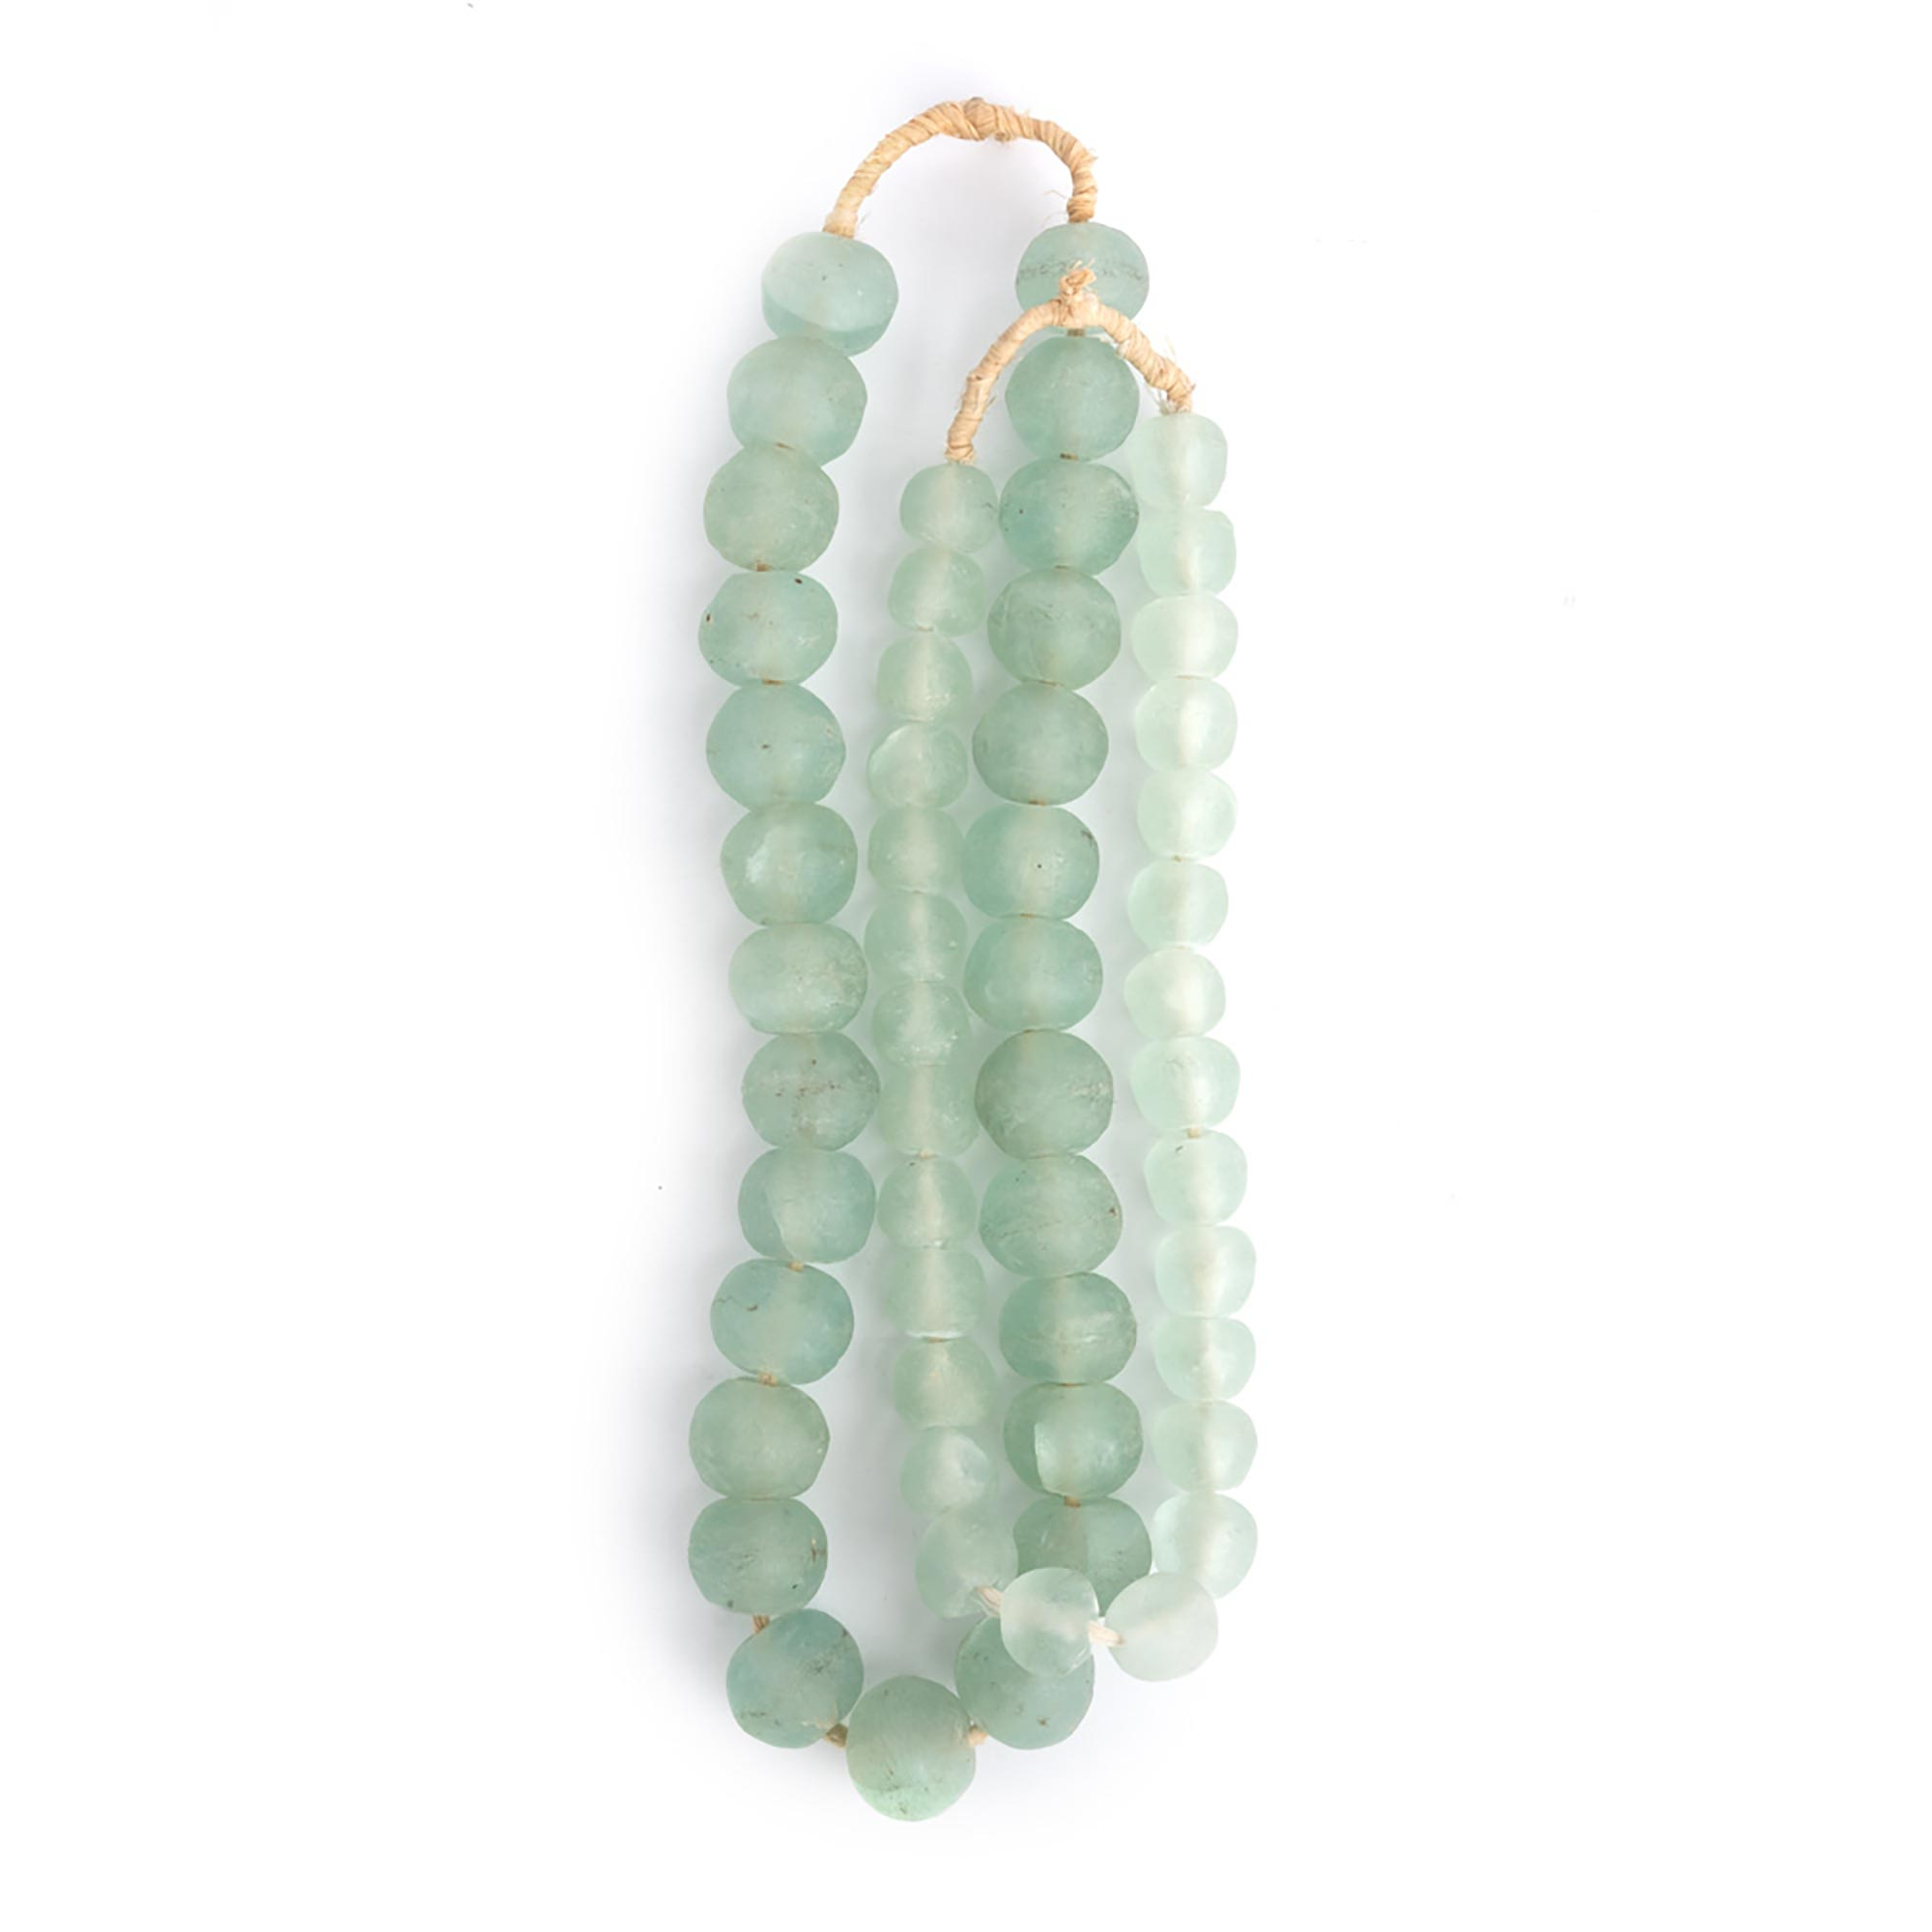 Large + Small Glass Beads (Large Beads sold separately)